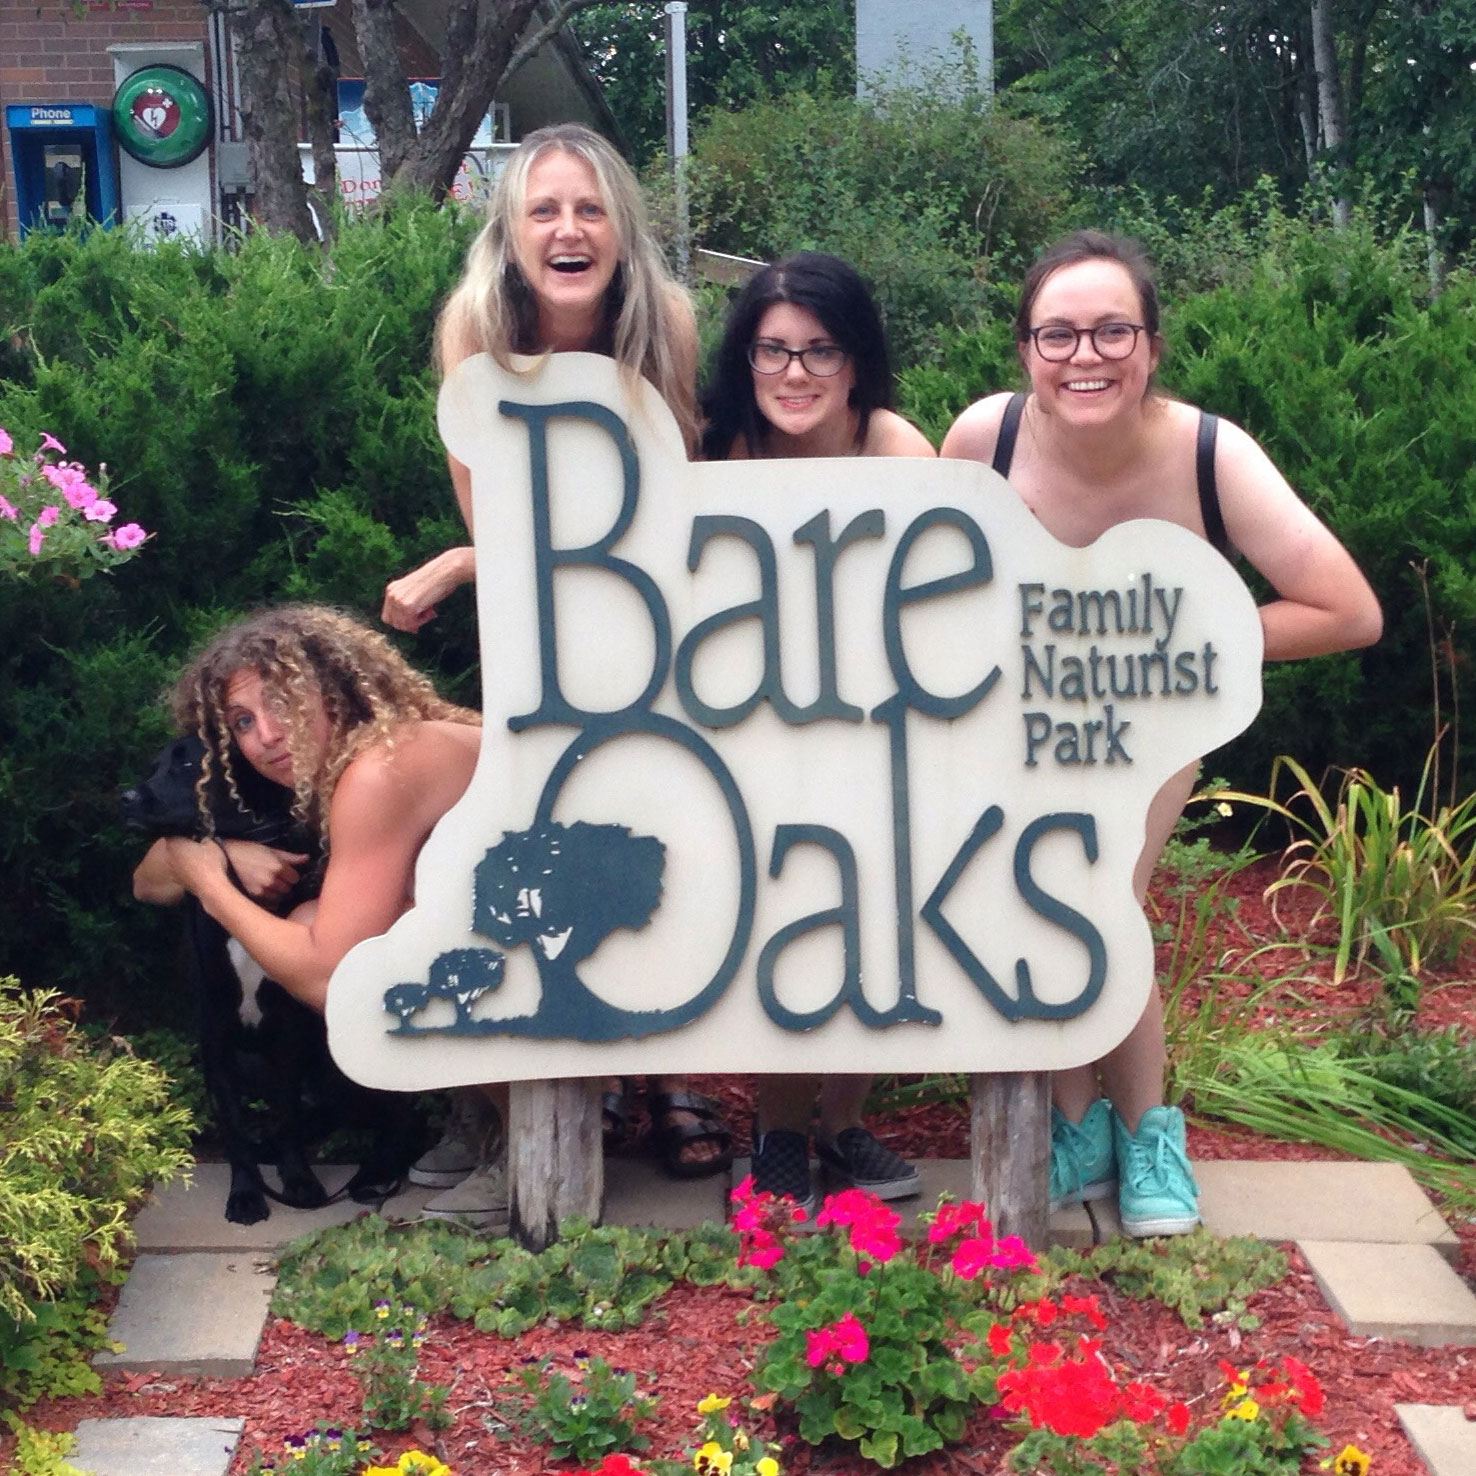 August 2017 nude comedy at Bare Oaks Family Naturist Park